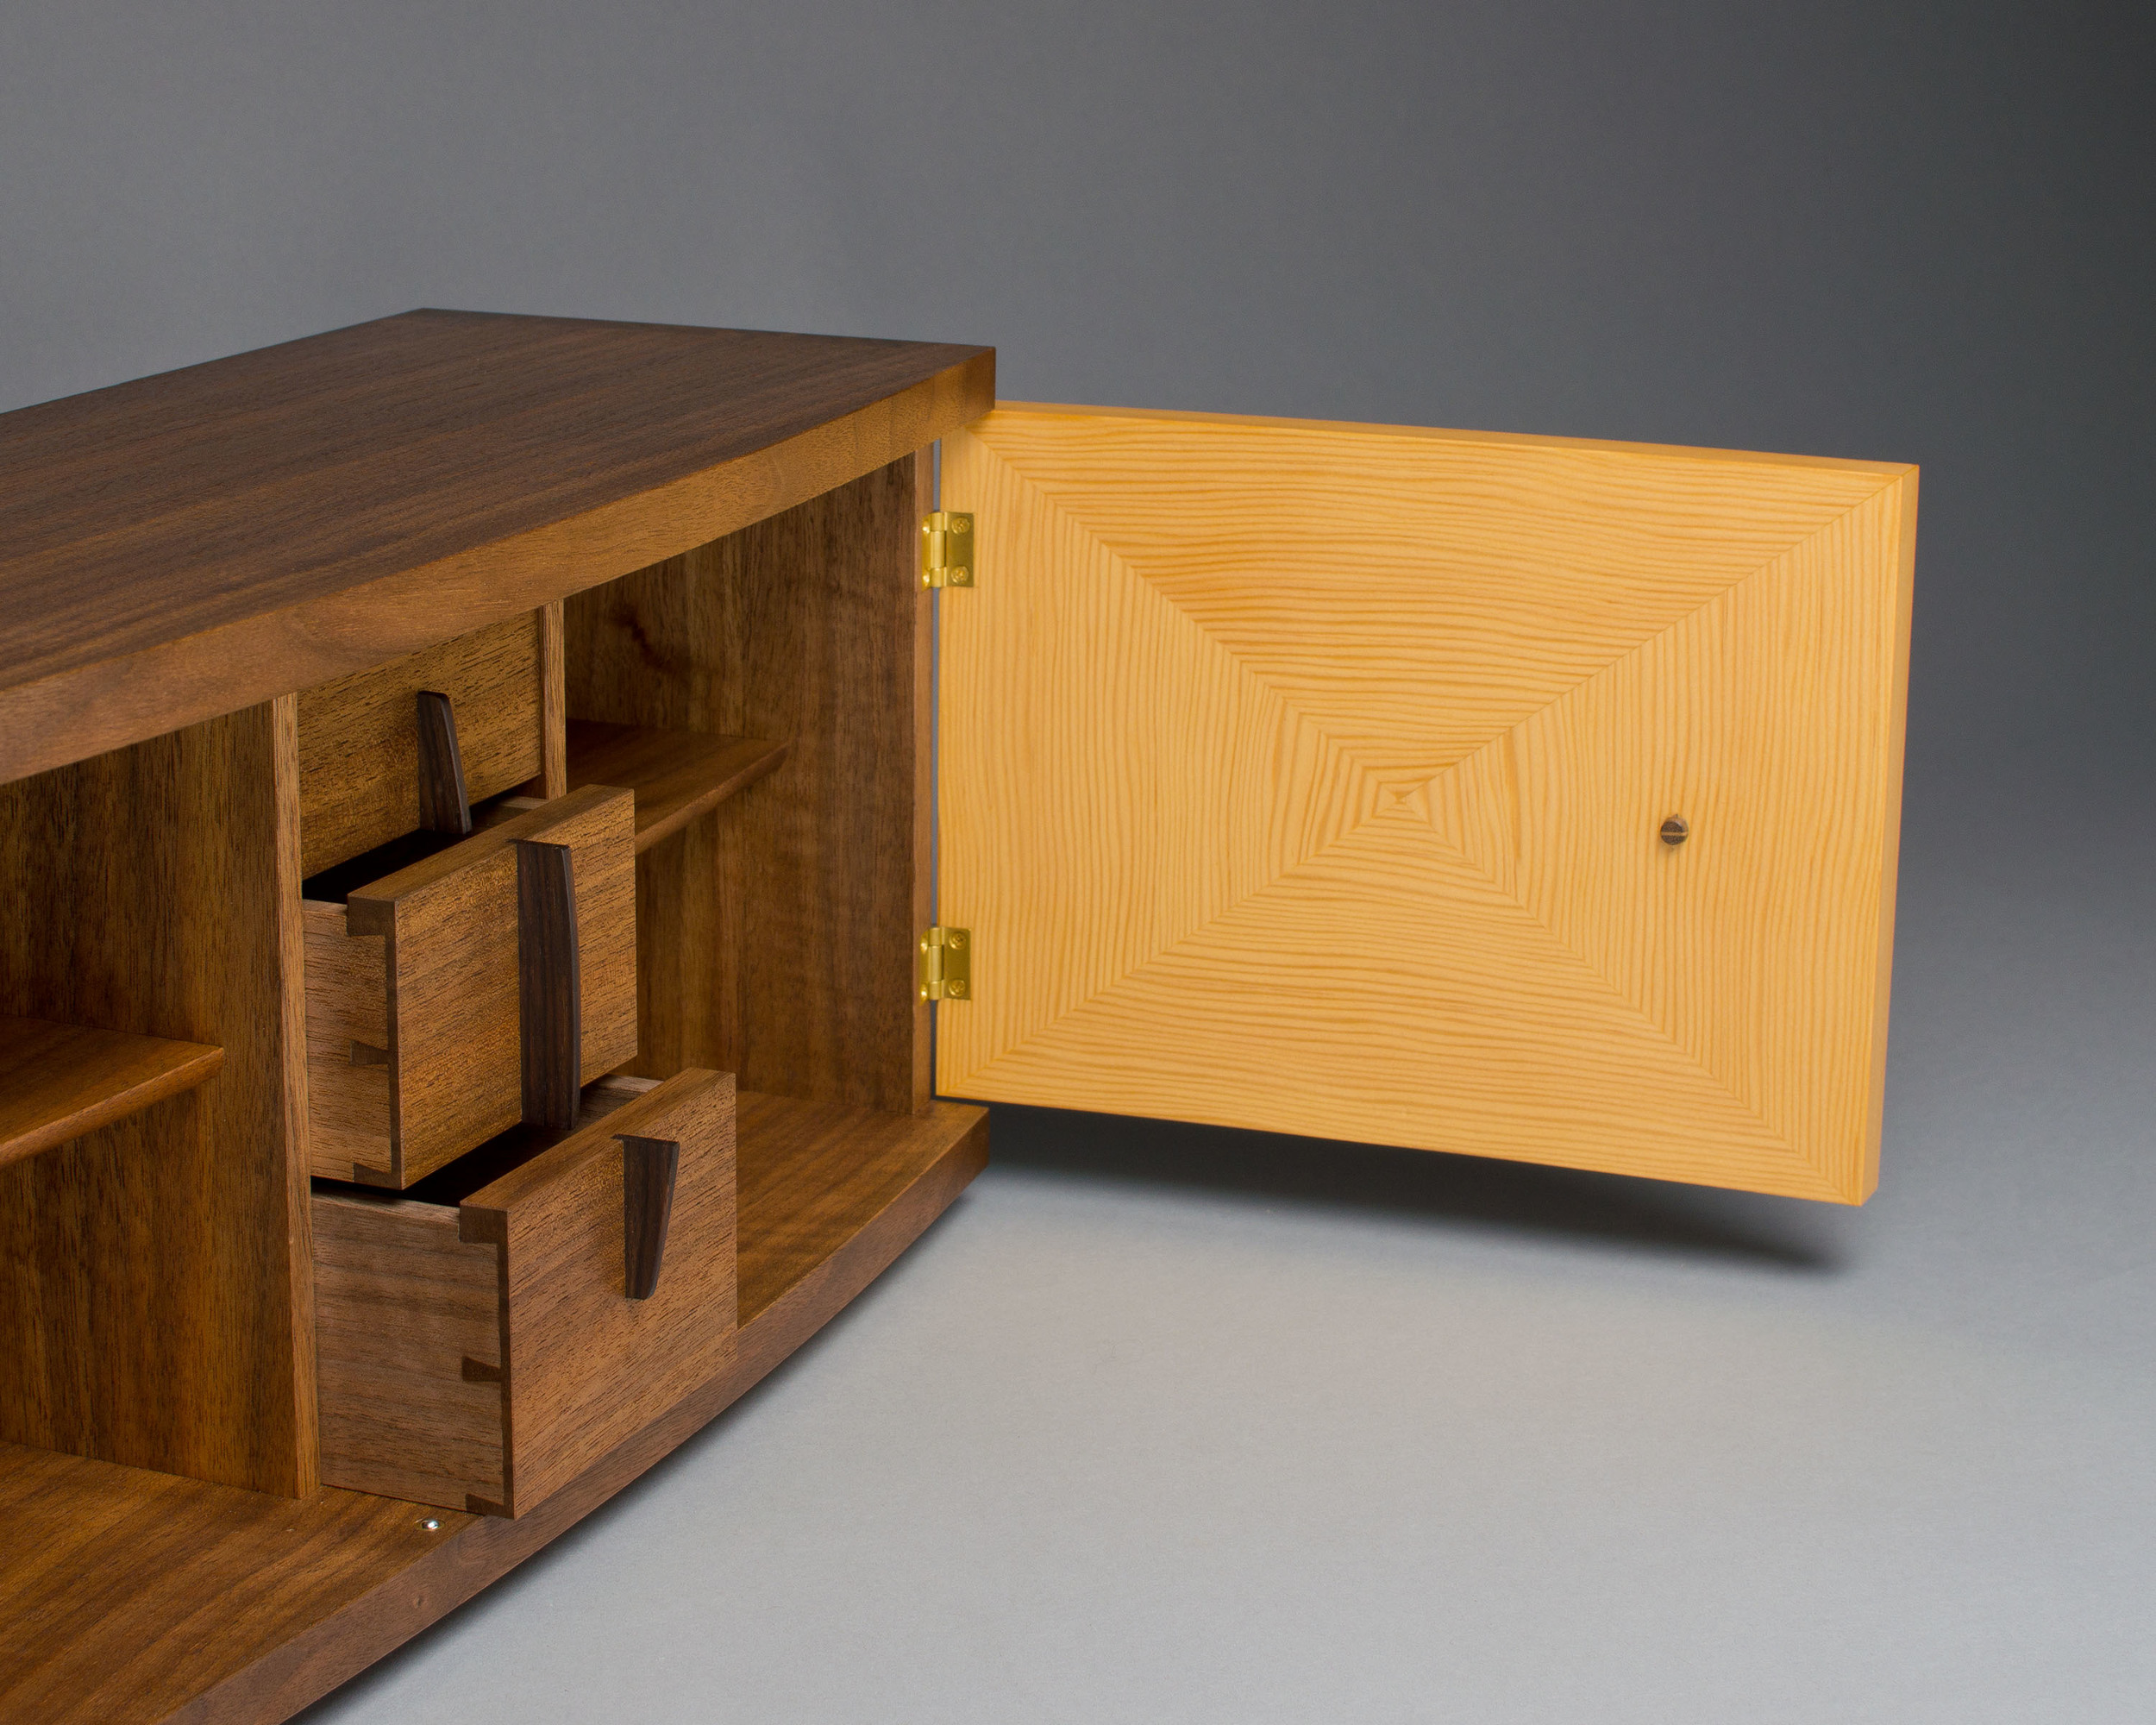 inside the cabinet is a column of three small dovetailed drawers